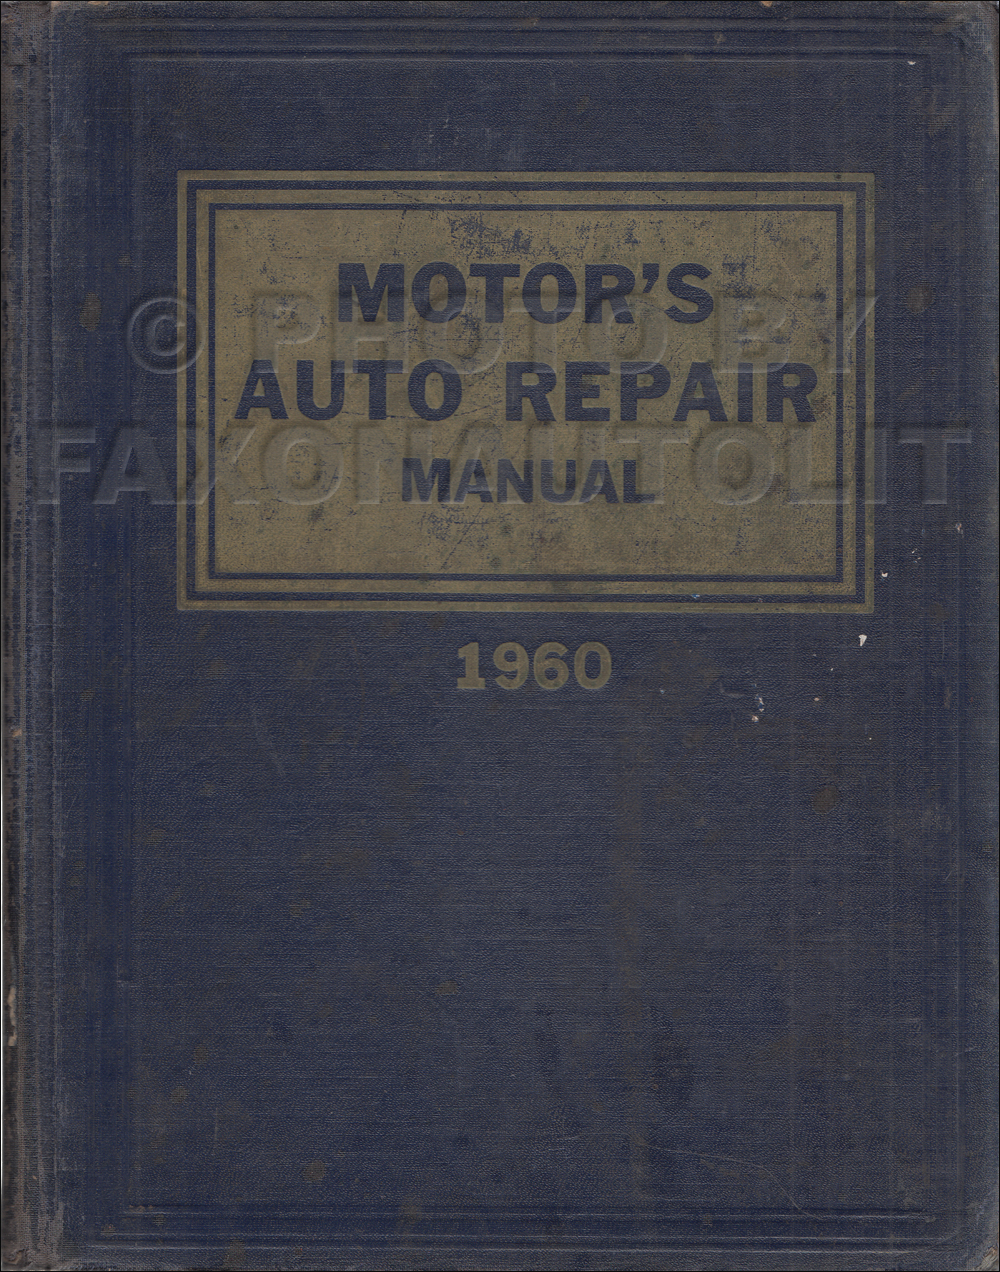 1953-1960 Motor's Car Shop Manual 23rd Edition